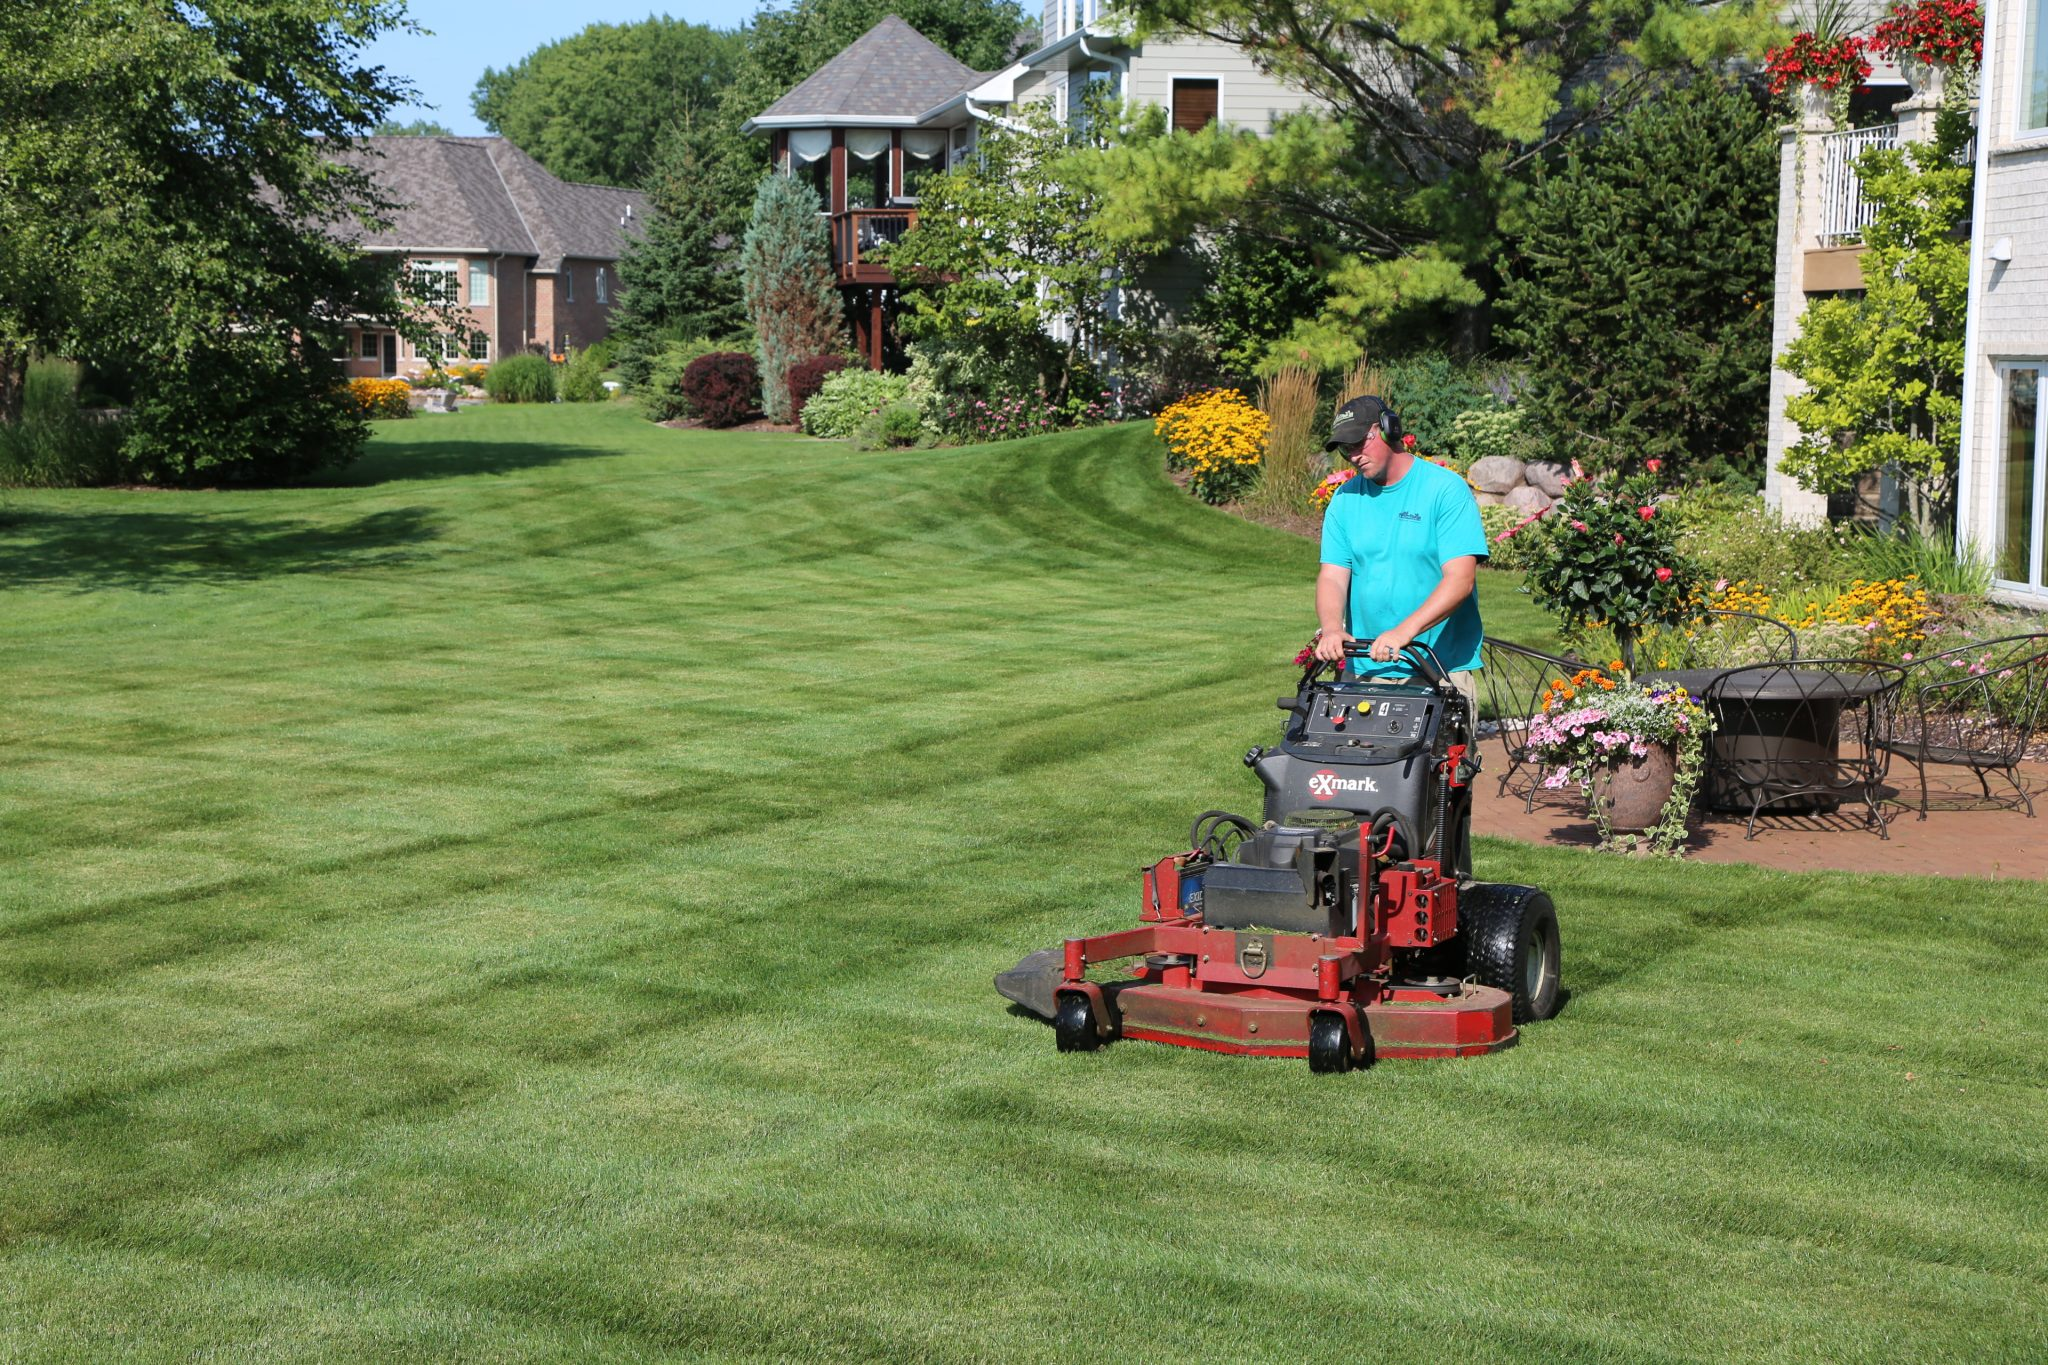 Lawn care for client in Suamico